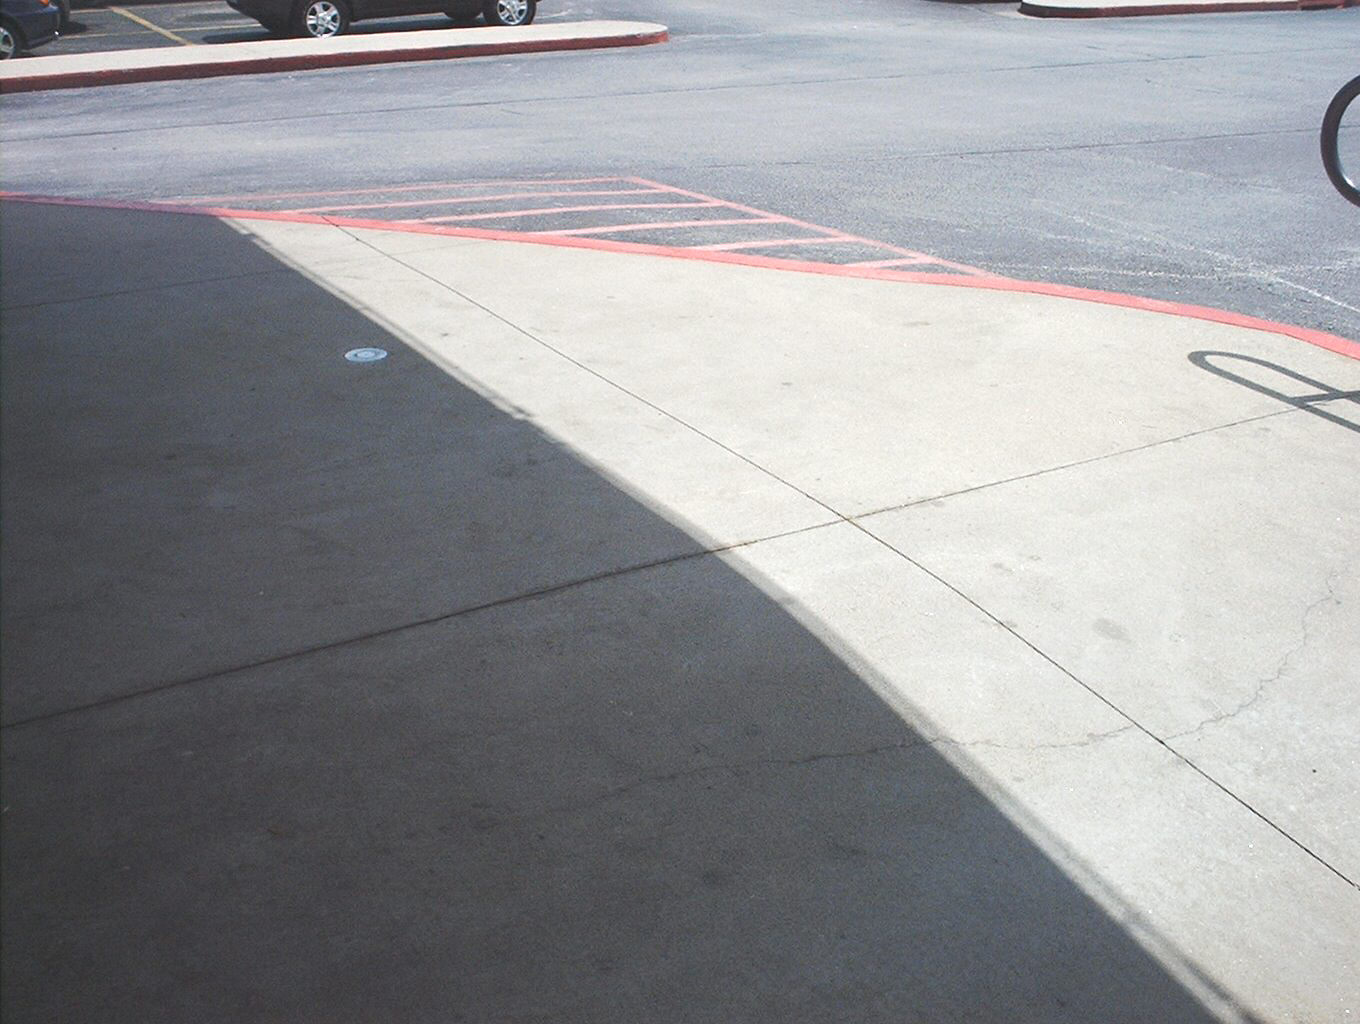 Concrete after cleaning